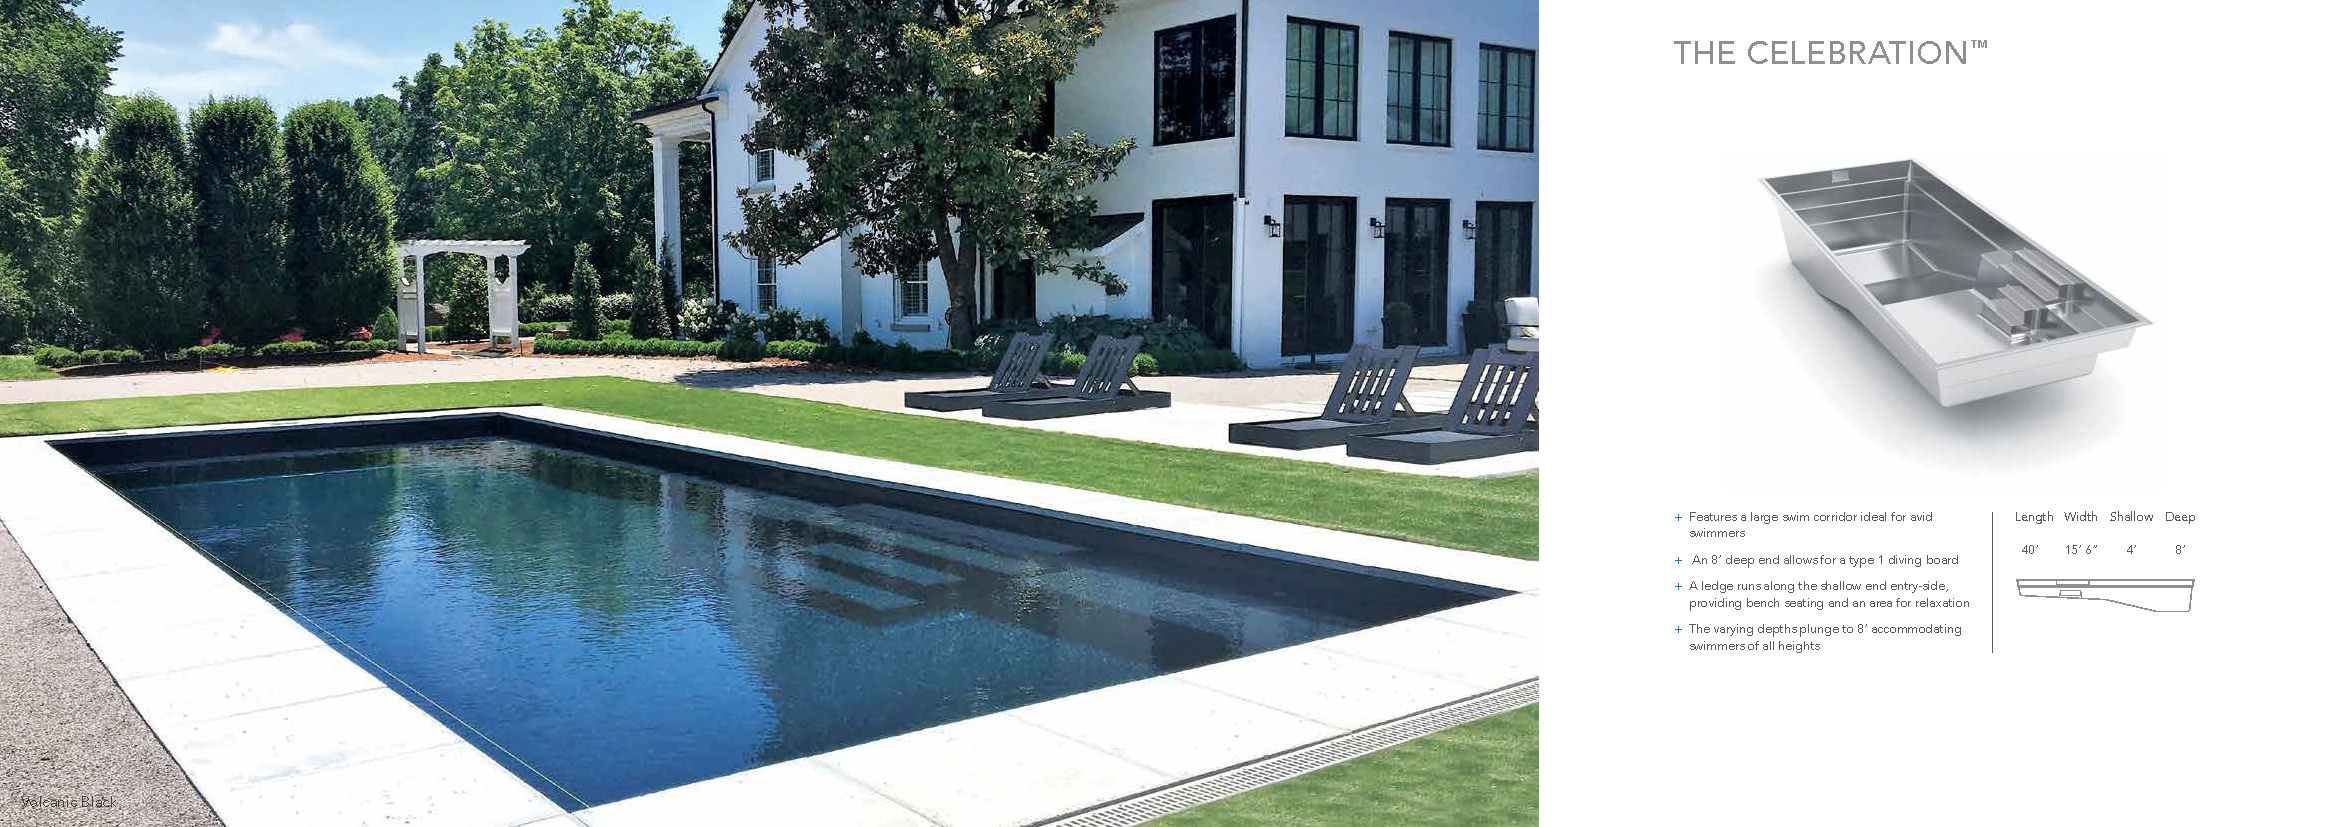 Imagine Pools Consumer Brochure 2018-1001_Page_14